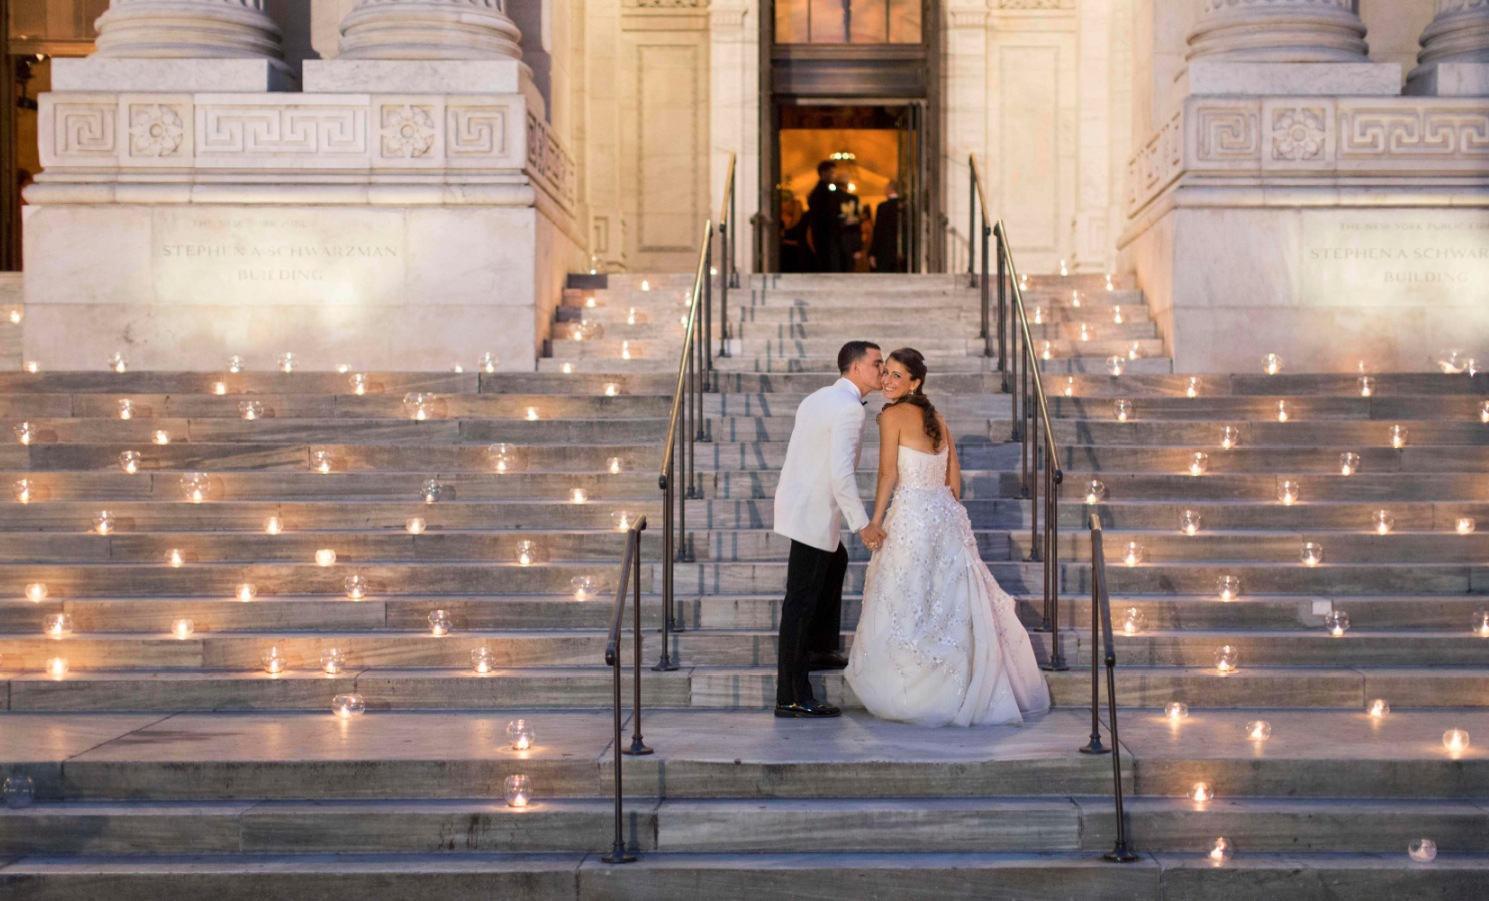 wedding portraits candles candlelight candlelit new york public library